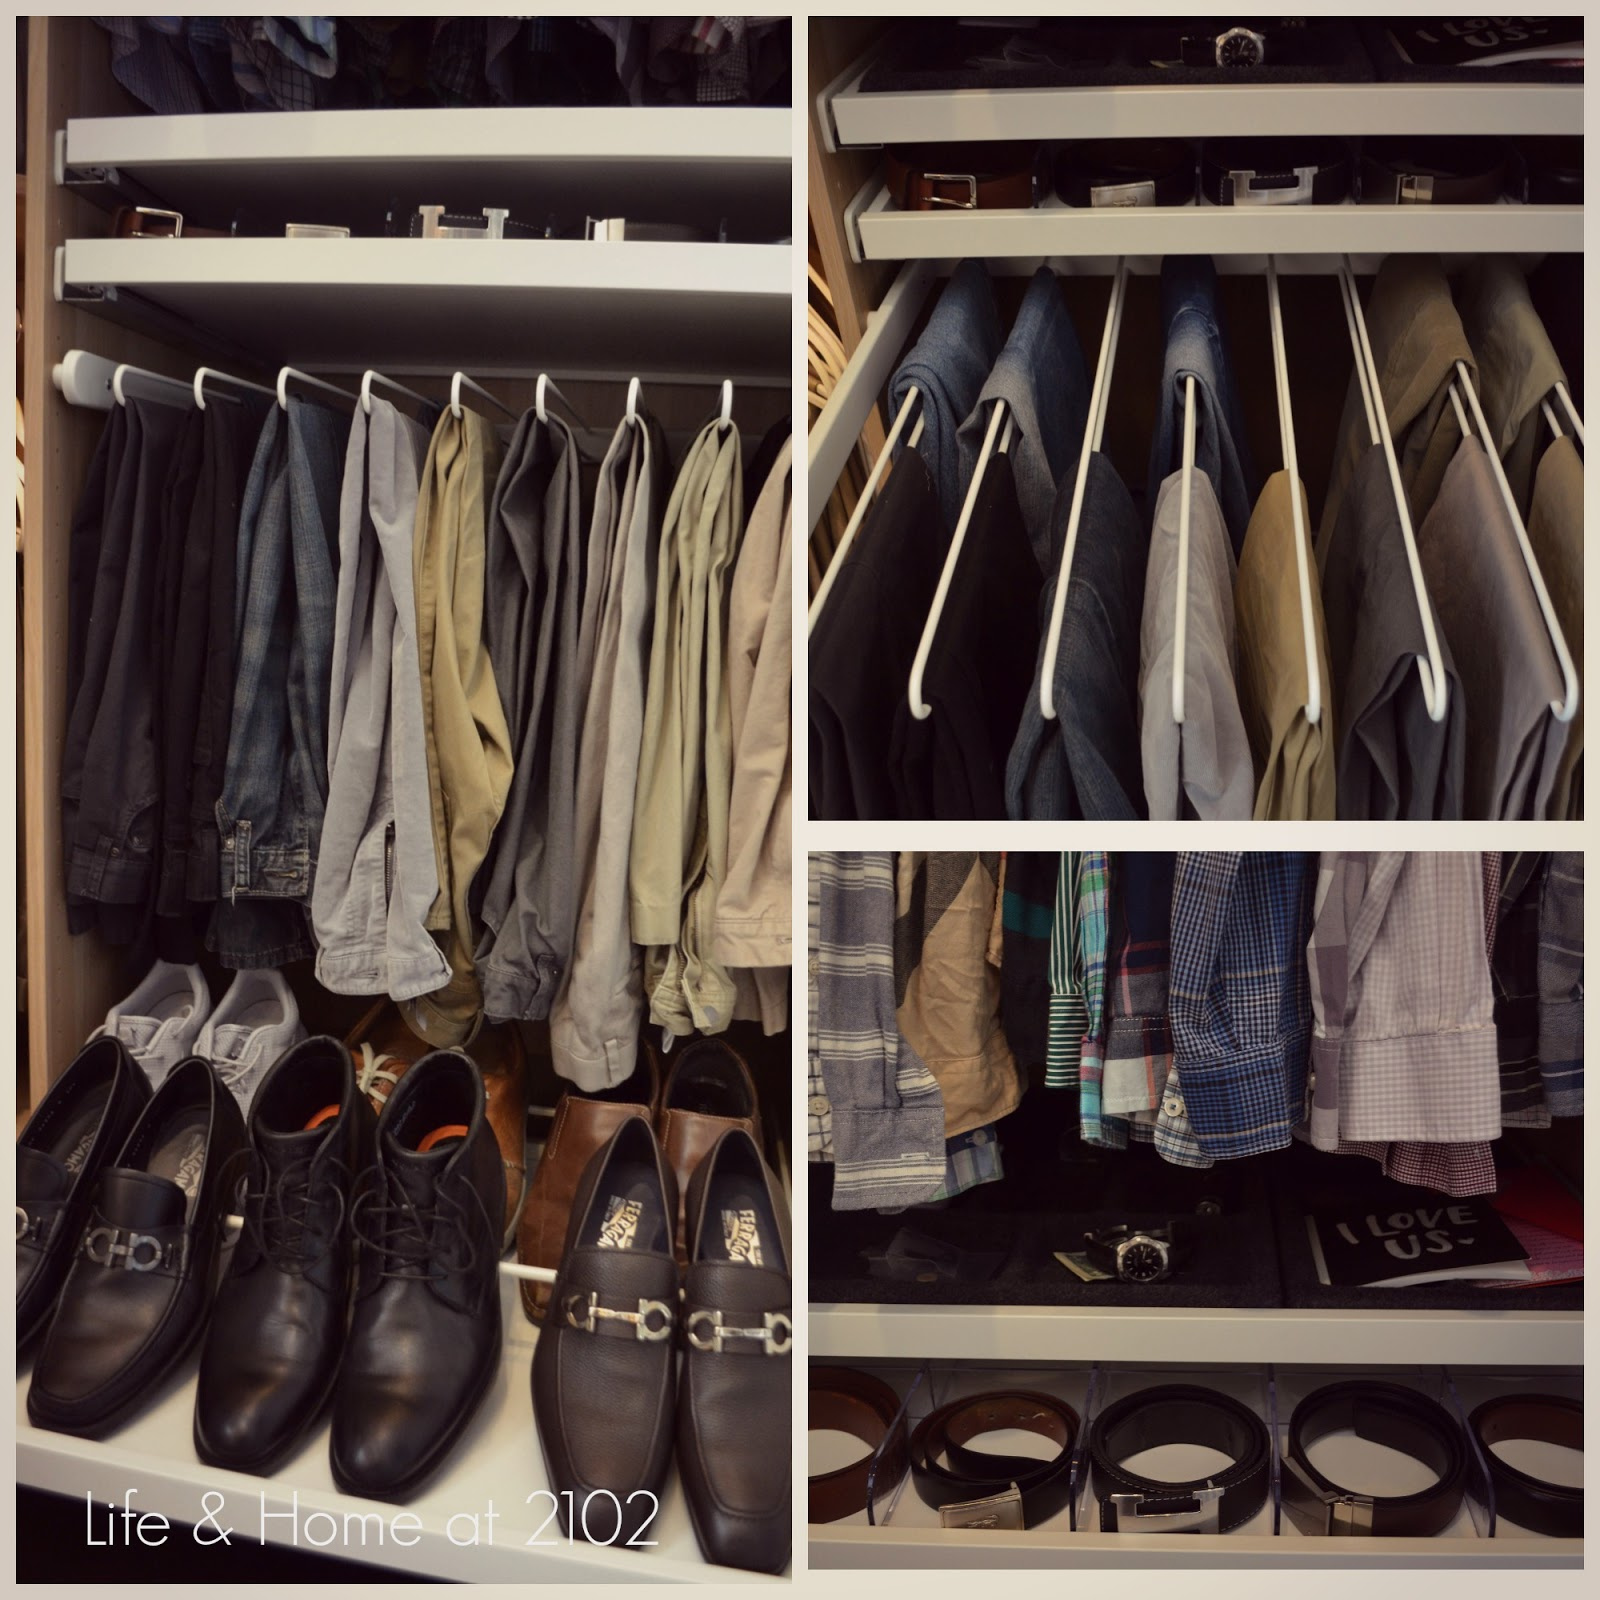 Ikea System Life And Home At 2102 Guide To Building Your Own Closet